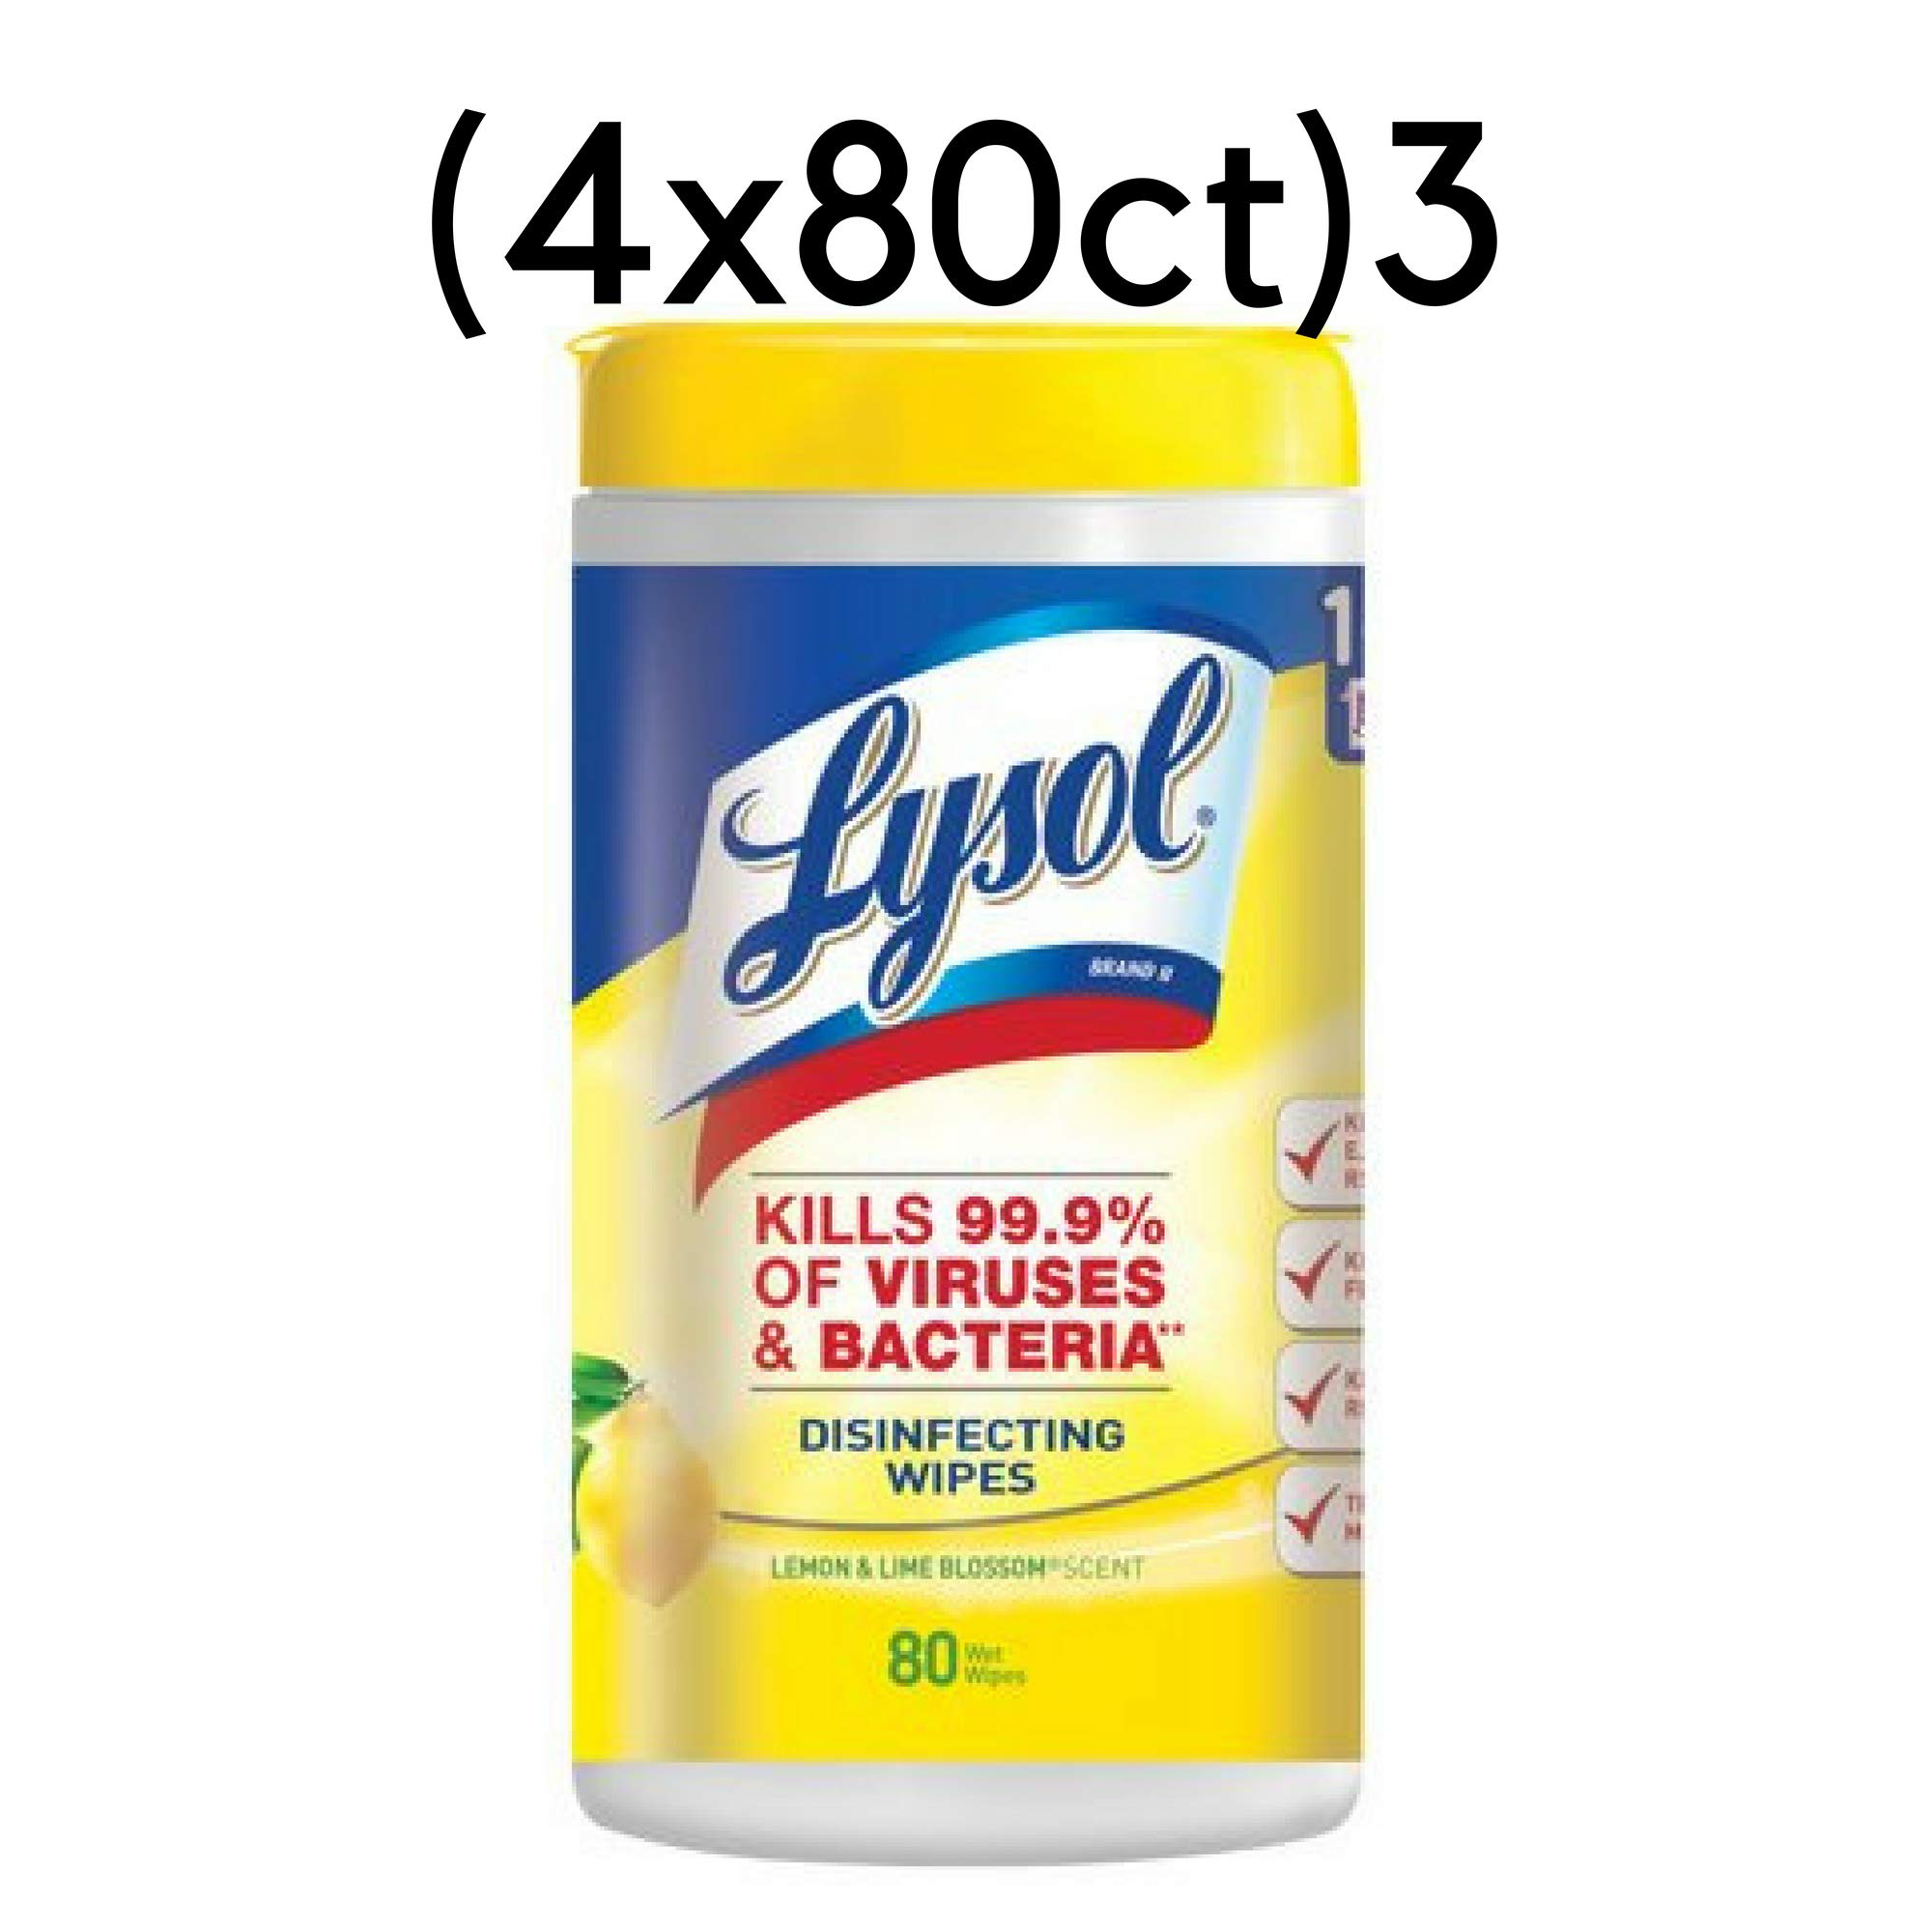 Lysol - Disinfecting Wipes - 4x80ct - Lemon & Lime Blossom - Disinfectant - Cleaning - Sanitizing (3 Pack(320 Wipes))